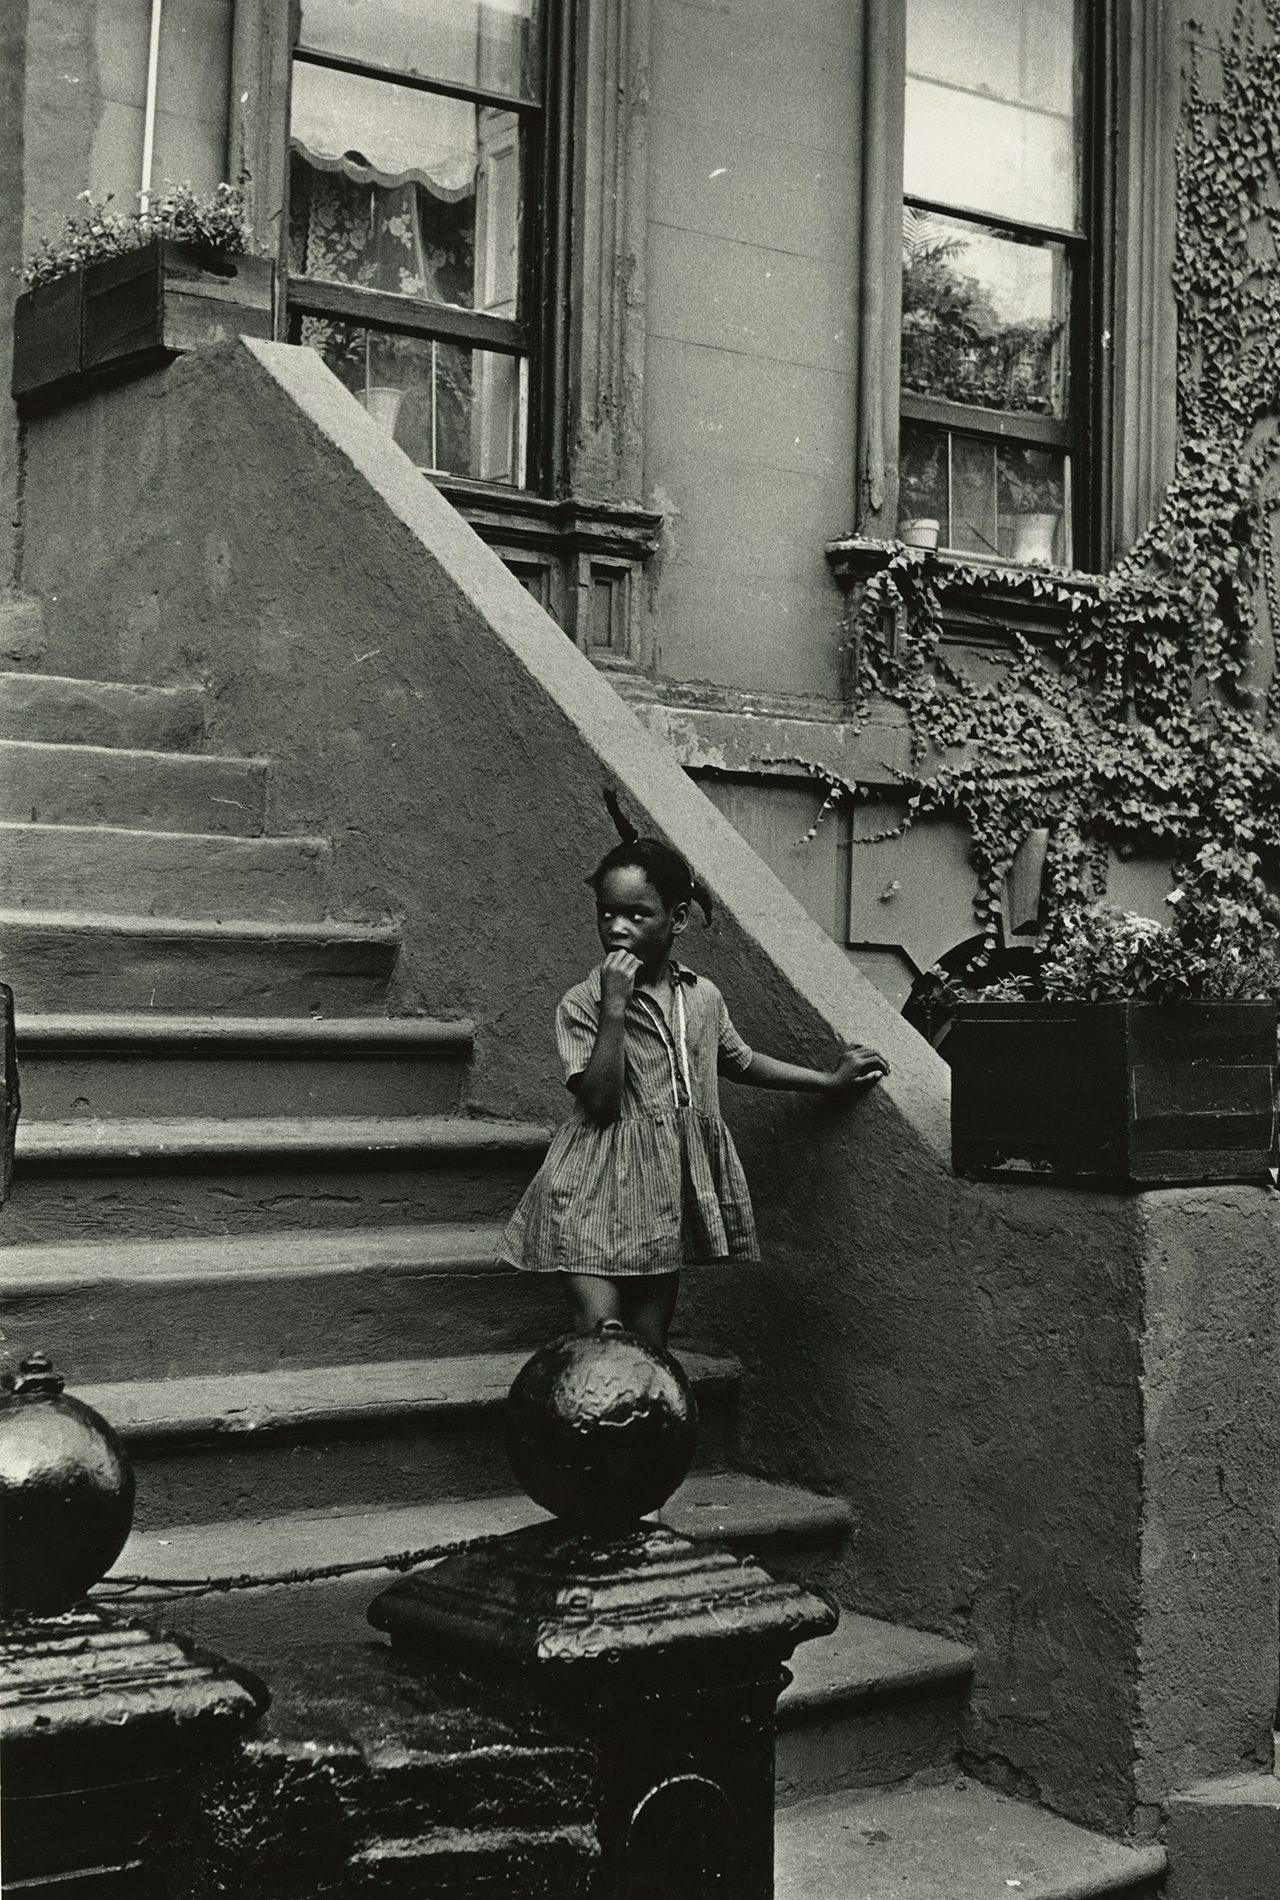 """Louis Draper, """"Untitled (Girl on steps, building with ivy)"""" (c. 1965), vintage gelatin silver print, printed c. 1965 14 x 11 inches"""